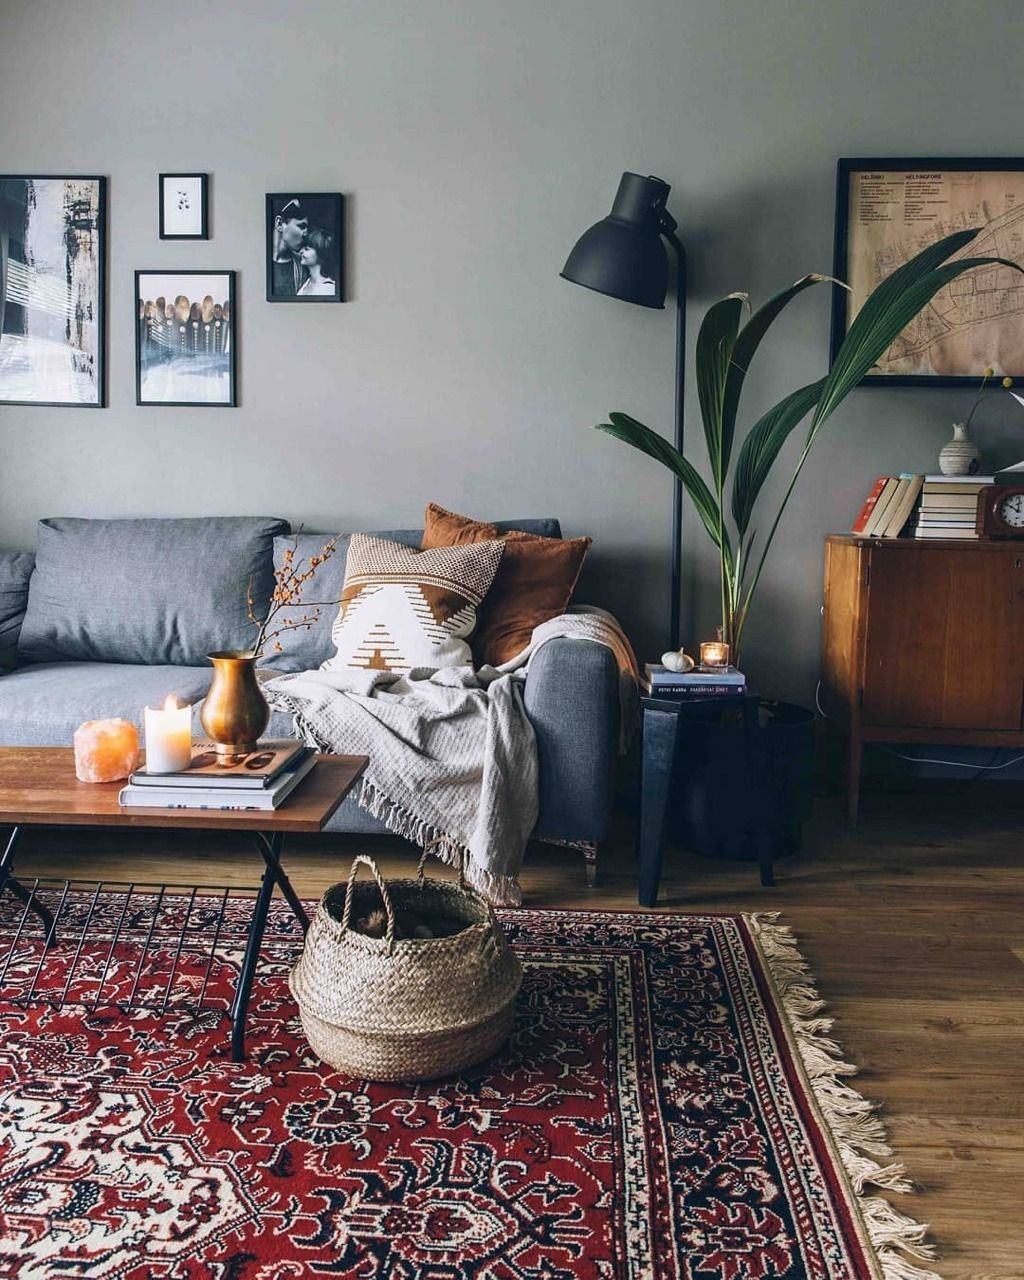 Home Inspiration | Essi Espinosa My Living - Interior Design is the definitive resource for interior designers - Pursue your dreams of the perfect Scandinavian style home with these inspiring Nordic apartment designs. #scandinavianinteriordesign